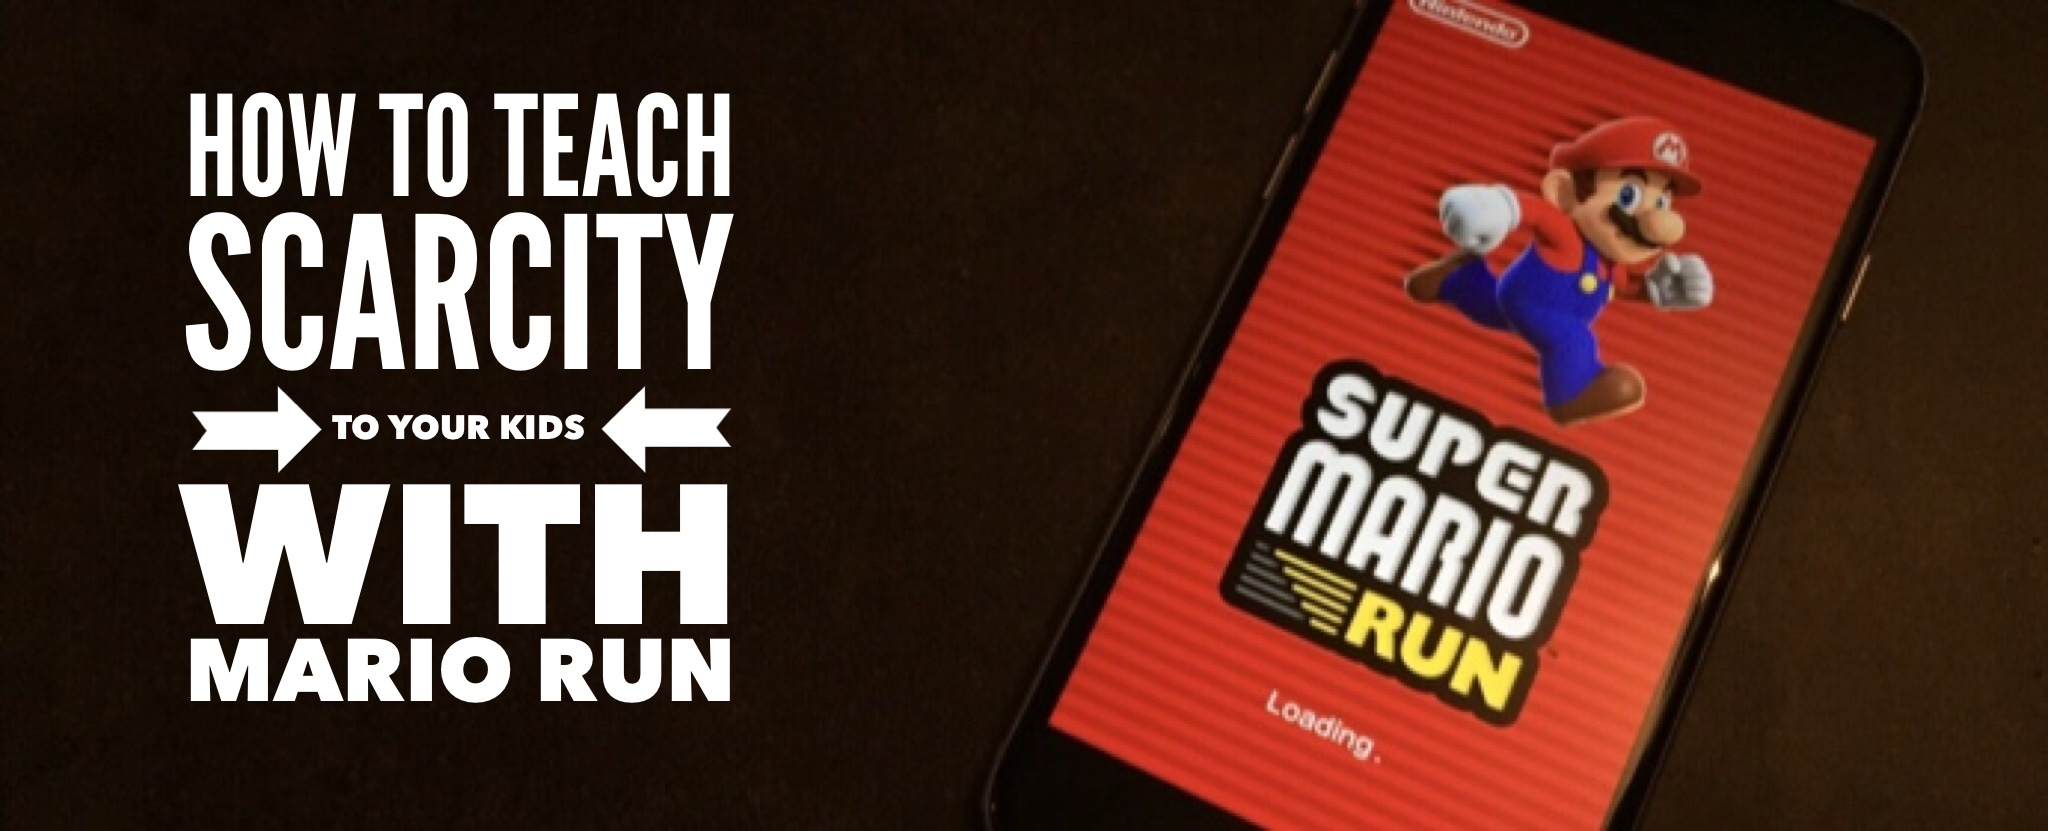 How to teach scarcity to your kids with Mario Run